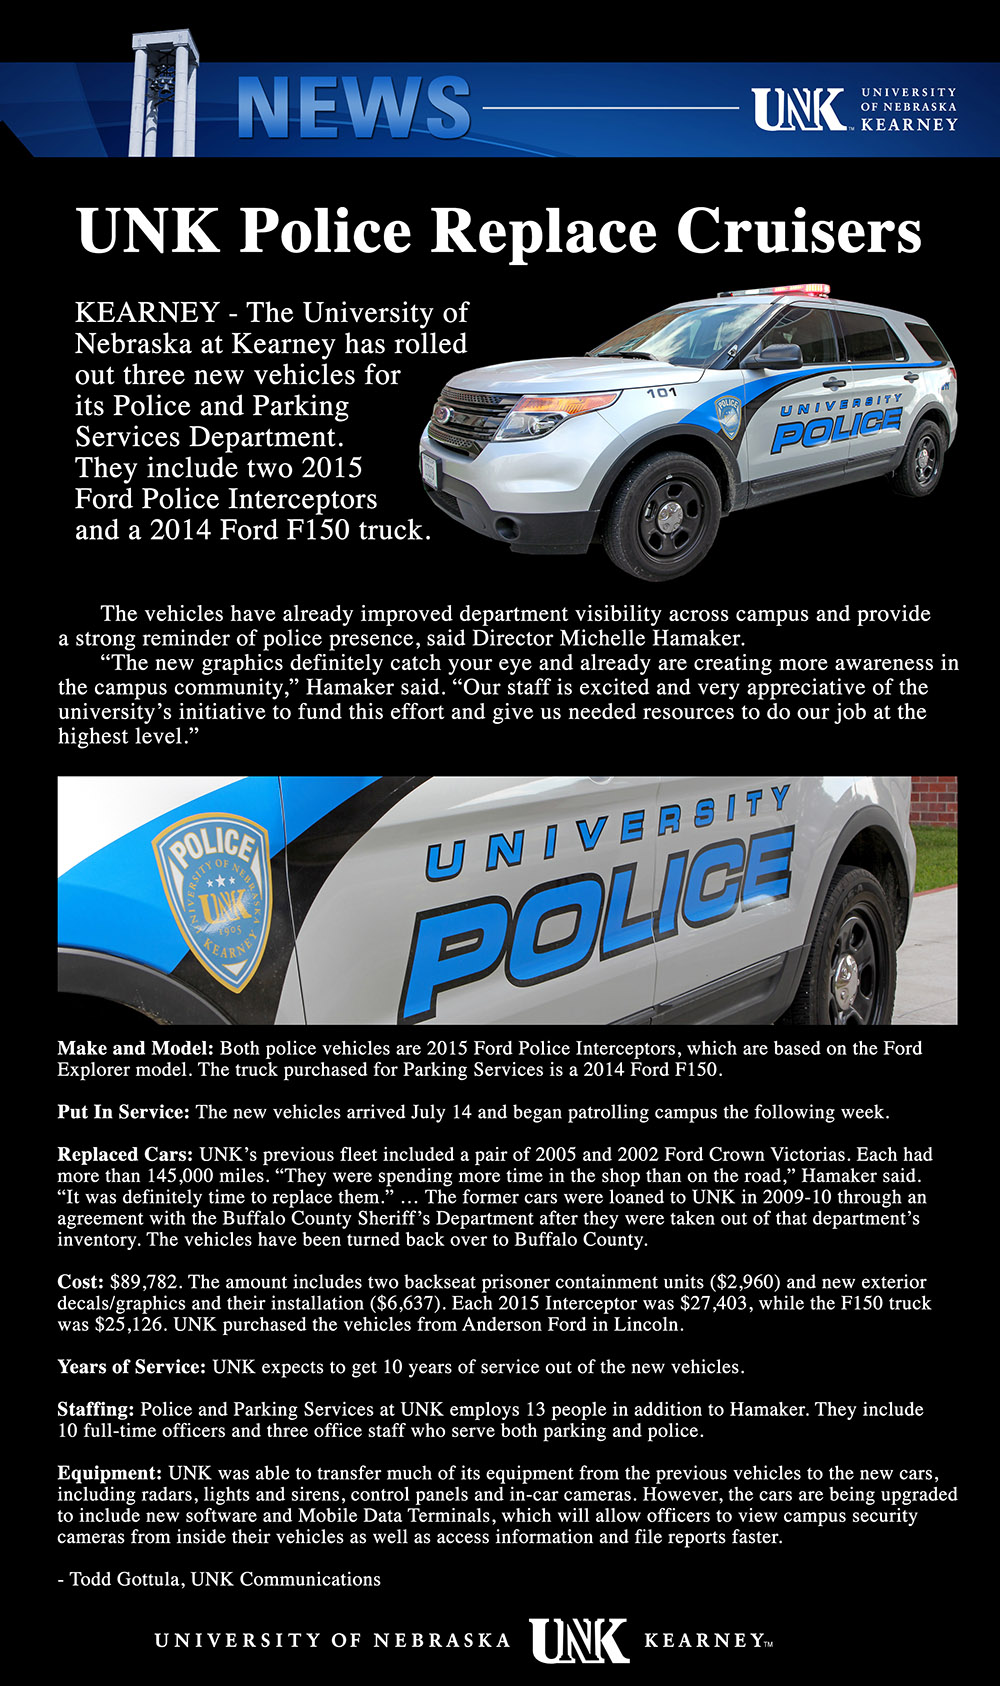 "UNK Police Replace Cruisers  KEARNEY - The University of Nebraska at Kearney has rolled out three new vehicles for its Police and Parking Services Department. They include two 2015 Ford Police Interceptors and a 2014 Ford F150 truck. The vehicles have already improved department visibility across campus and provide a strong reminder of police presence, said Director Michelle Hamaker. ""The new graphics definitely catch your eye and already are creating more awareness in the campus community,"" Hamaker said. ""Our staff is excited and very appreciative of the university's initiative to fund this effort and give us needed resources to do our job at the highest level.""  Make and Model: Both police vehicles are 2015 Ford Police Interceptors, which are based on the Ford Explorer model. The truck purchased for Parking Services is a 2014 Ford F150. Put In Service: The new vehicles arrived July 14 and began patrolling campus the following week. Replaced Cars: UNK's previous fleet included a pair of 2005 and 2002 Ford Crown Victorias. Each had more than 145,000 miles. ""They were spending more time in the shop than on the road,"" Hamaker said. ""It was definitely time to replace them."" … The former cars were loaned to UNK in 2009-10 through an agreement with the Buffalo County Sheriff's Department after they were taken out of that department's inventory. The vehicles have been turned back over to Buffalo County. Cost: $89,782. The amount includes two backseat prisoner containment units ($2,960) and new exterior decals/graphics and their installation ($6,637). Each 2015 Interceptor was $27,403, while the F150 truck was $25,126. UNK purchased the vehicles from Anderson Ford in Lincoln. Years of Service: UNK expects to get 10 years of service out of the new vehicles.  Staffing: Police and Parking Services at UNK employs 13 people in addition to Hamaker. They include 10 full-time officers and three office staff who serve both parking and police. Equipment: UNK was able to transfer much of its equipment from the previous vehicles to the new cars, including radars, lights and sirens, control panels and in-car cameras. However, the cars are being upgraded to include new software and Mobile Data Terminals, which will allow officers to view campus security cameras from inside their vehicles as well as access information and file reports faster."